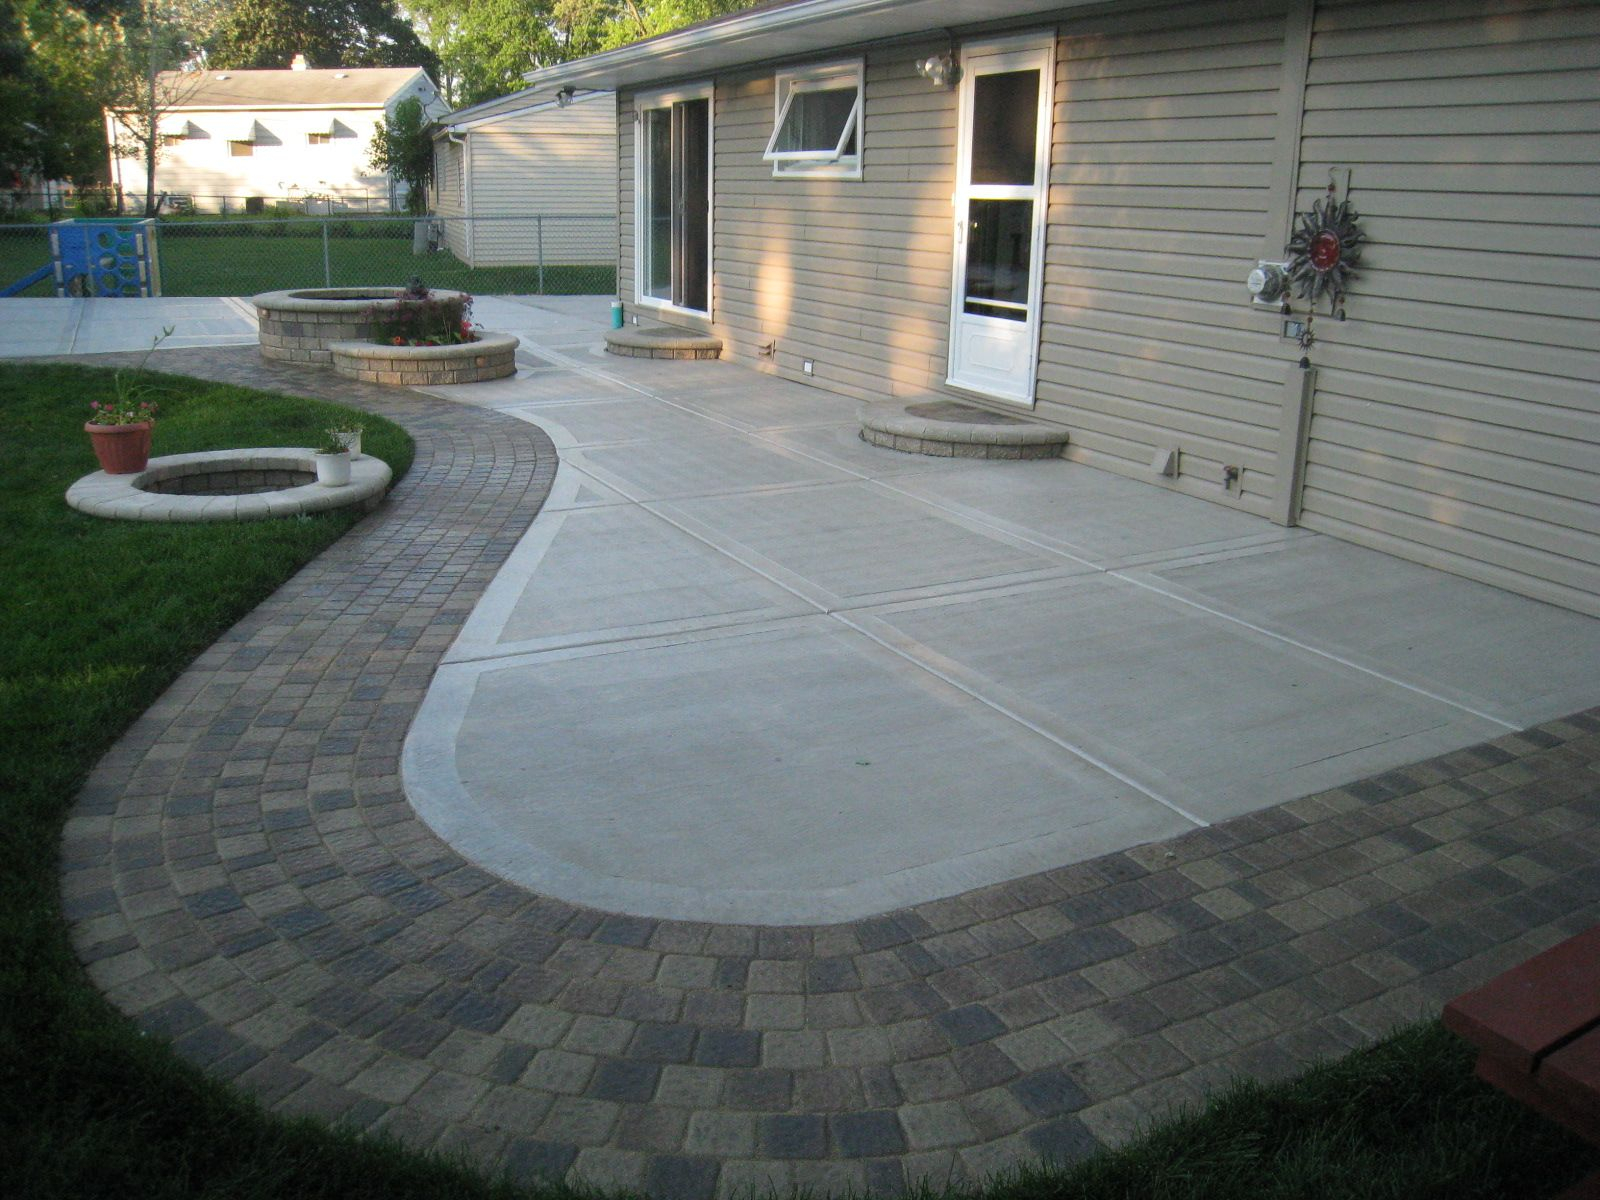 Back Yard Concrete Patio Ideas Concrete Patio California Finish throughout 15 Smart Concepts of How to Upgrade Concrete Patio Ideas Backyard